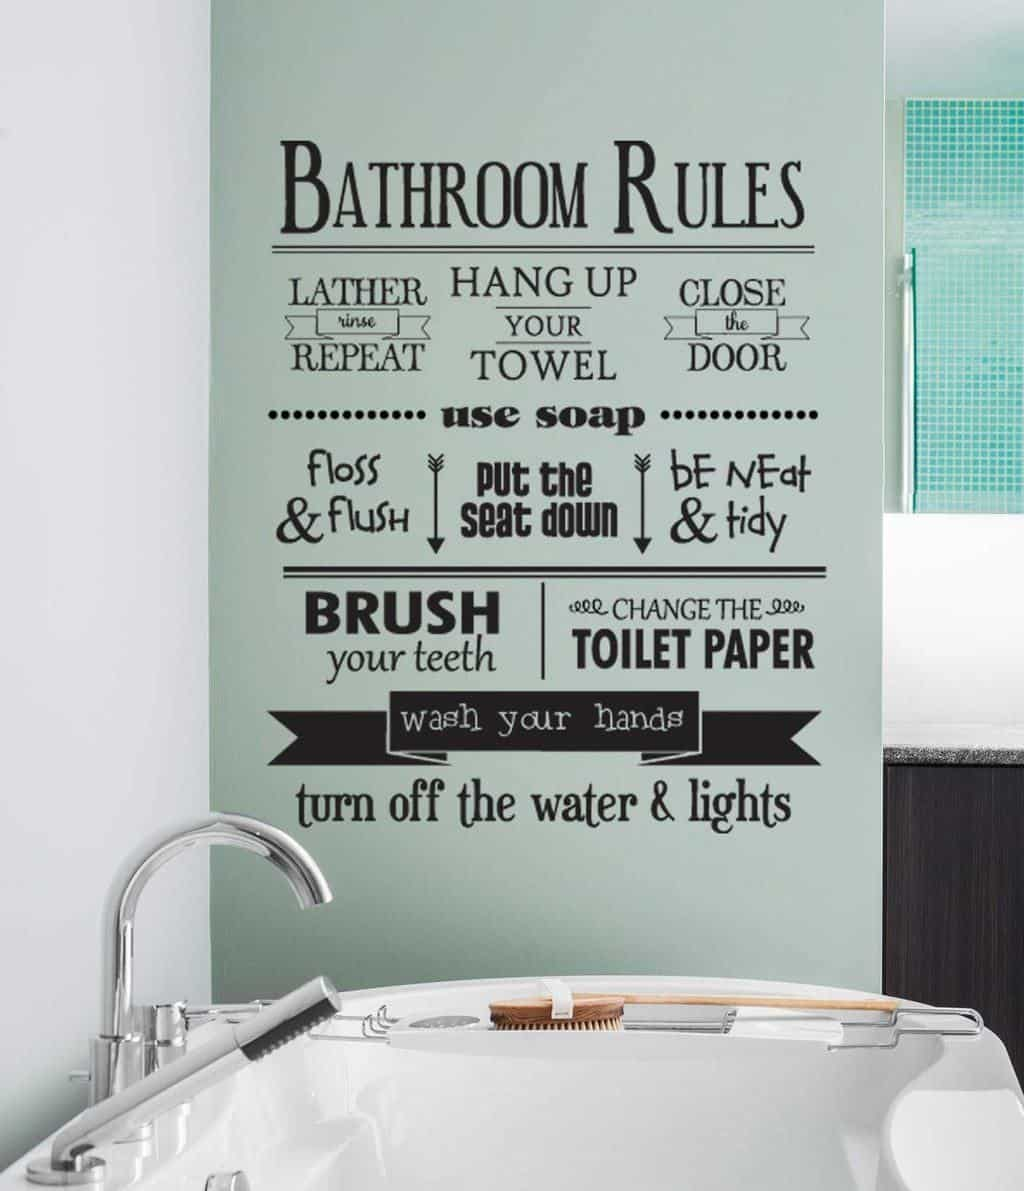 Bathroom rules wall decal sticker | Bathroom rules sticker